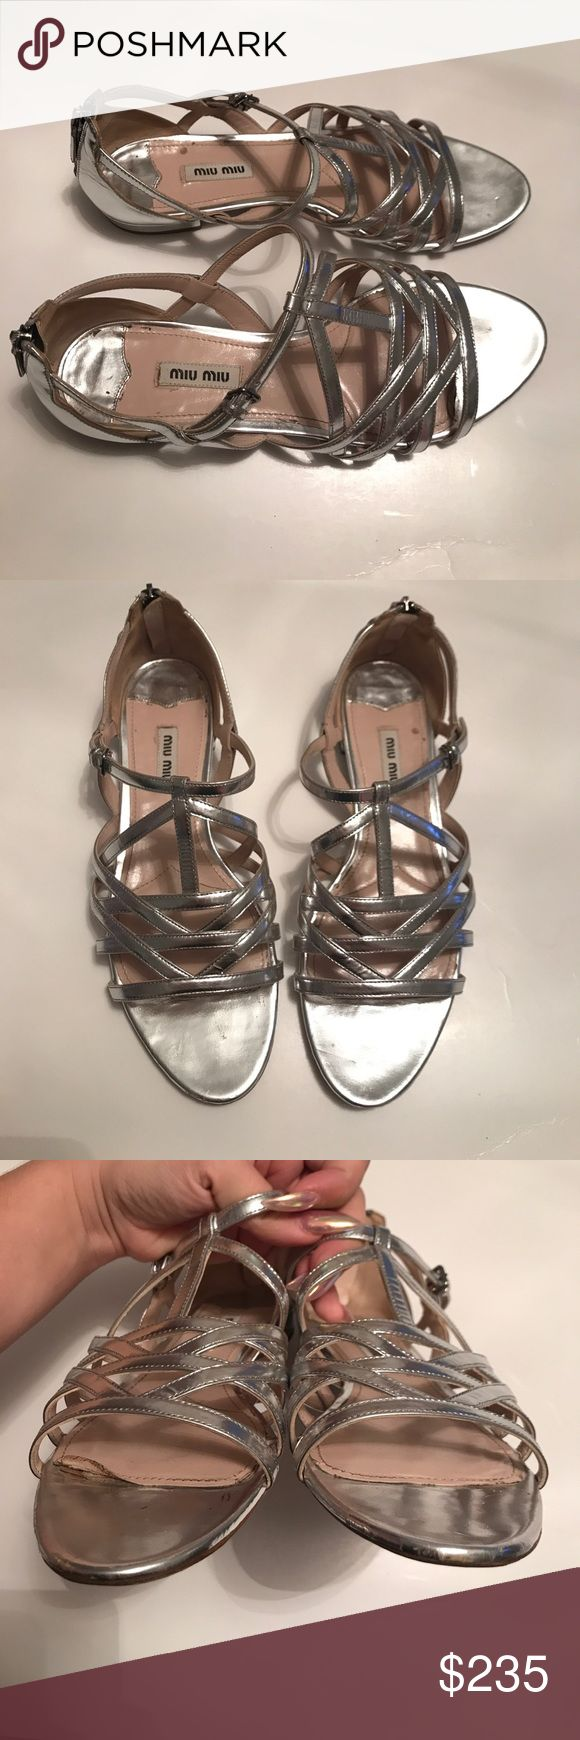 MIU MIU Prada silver strappy sandal Sz 39.5 Fashionable, in great ore owned condition MIU MIU Prada silver strappy flat sandal. They are a size 39.5. Some creasing in back, and scuff to back heel portion. Black marker mark on bottom of one shoe. Top of the lining in one shoe on the footbed is rolled up coming up- please see photo. Still current and such a classic miu miu look! Miu Miu Shoes Sandals